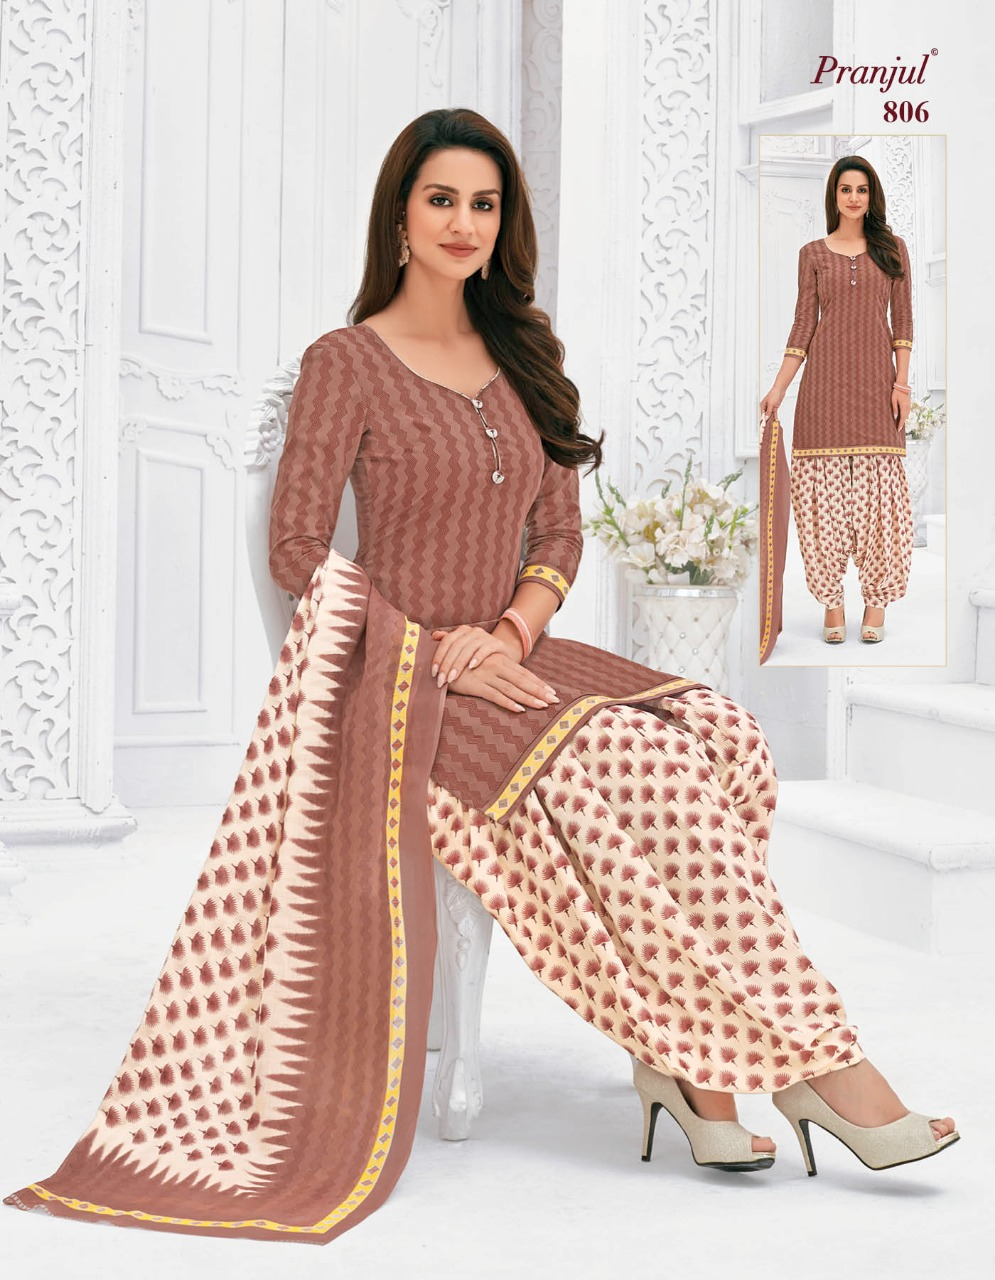 Pranjul Priyanka Vol 8 A Readymade Suit Wholesale Catalog 15 Pcs 2 - Pranjul Priyanka Vol 8 A Readymade Suit Wholesale Catalog 15 Pcs